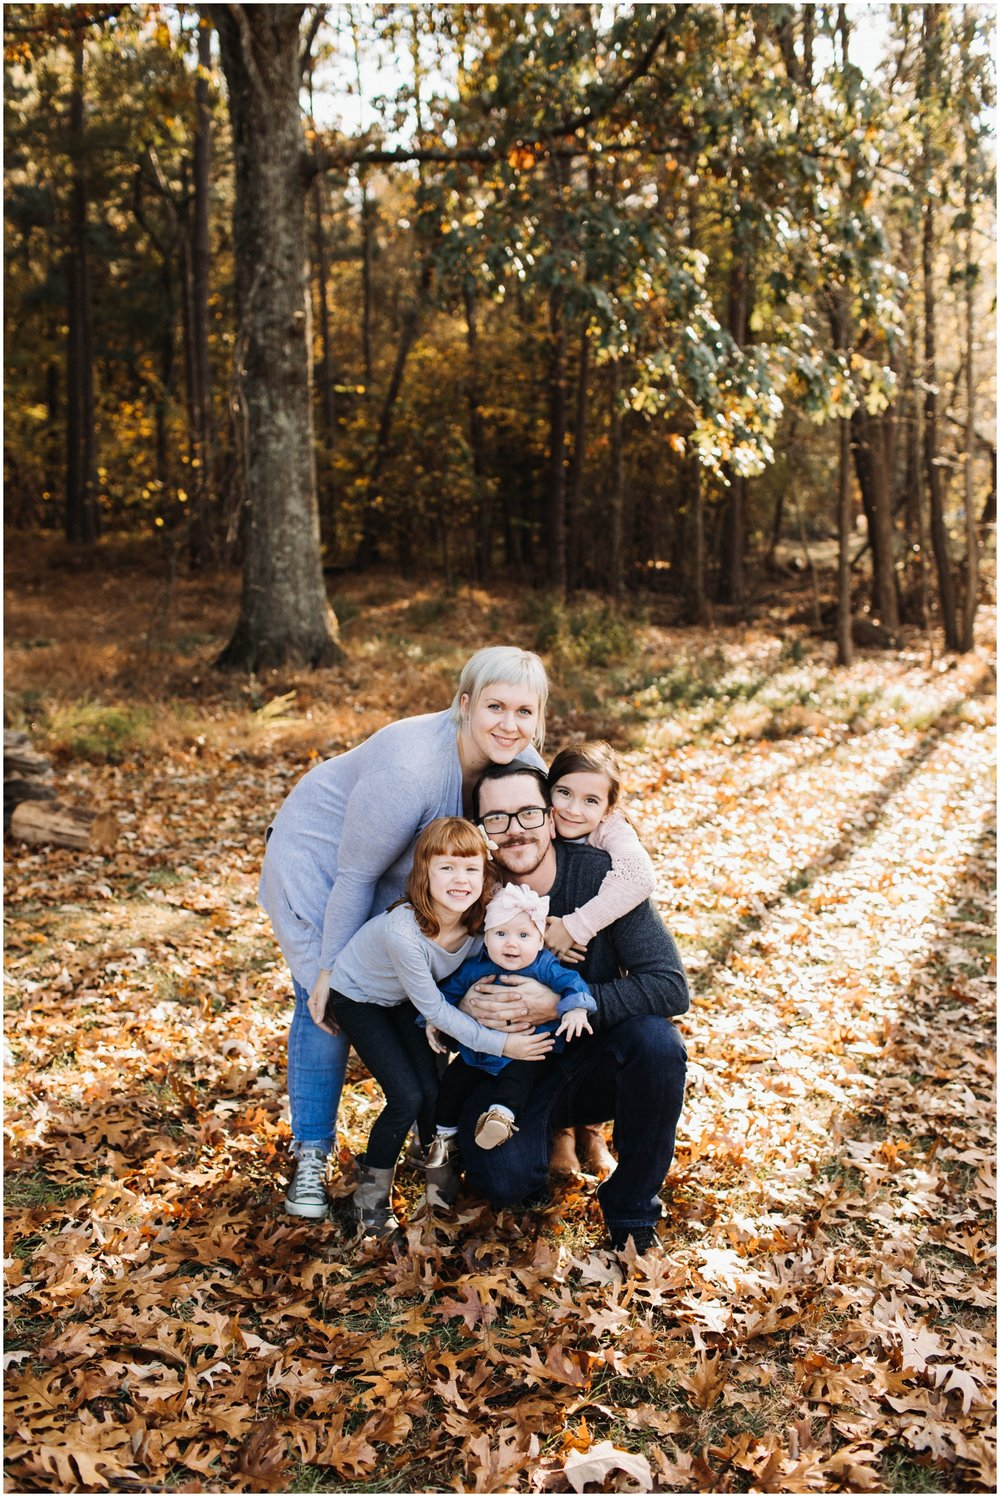 the_fosburghs_adventure_family_session_unposed_families_portraits_0002.jpg